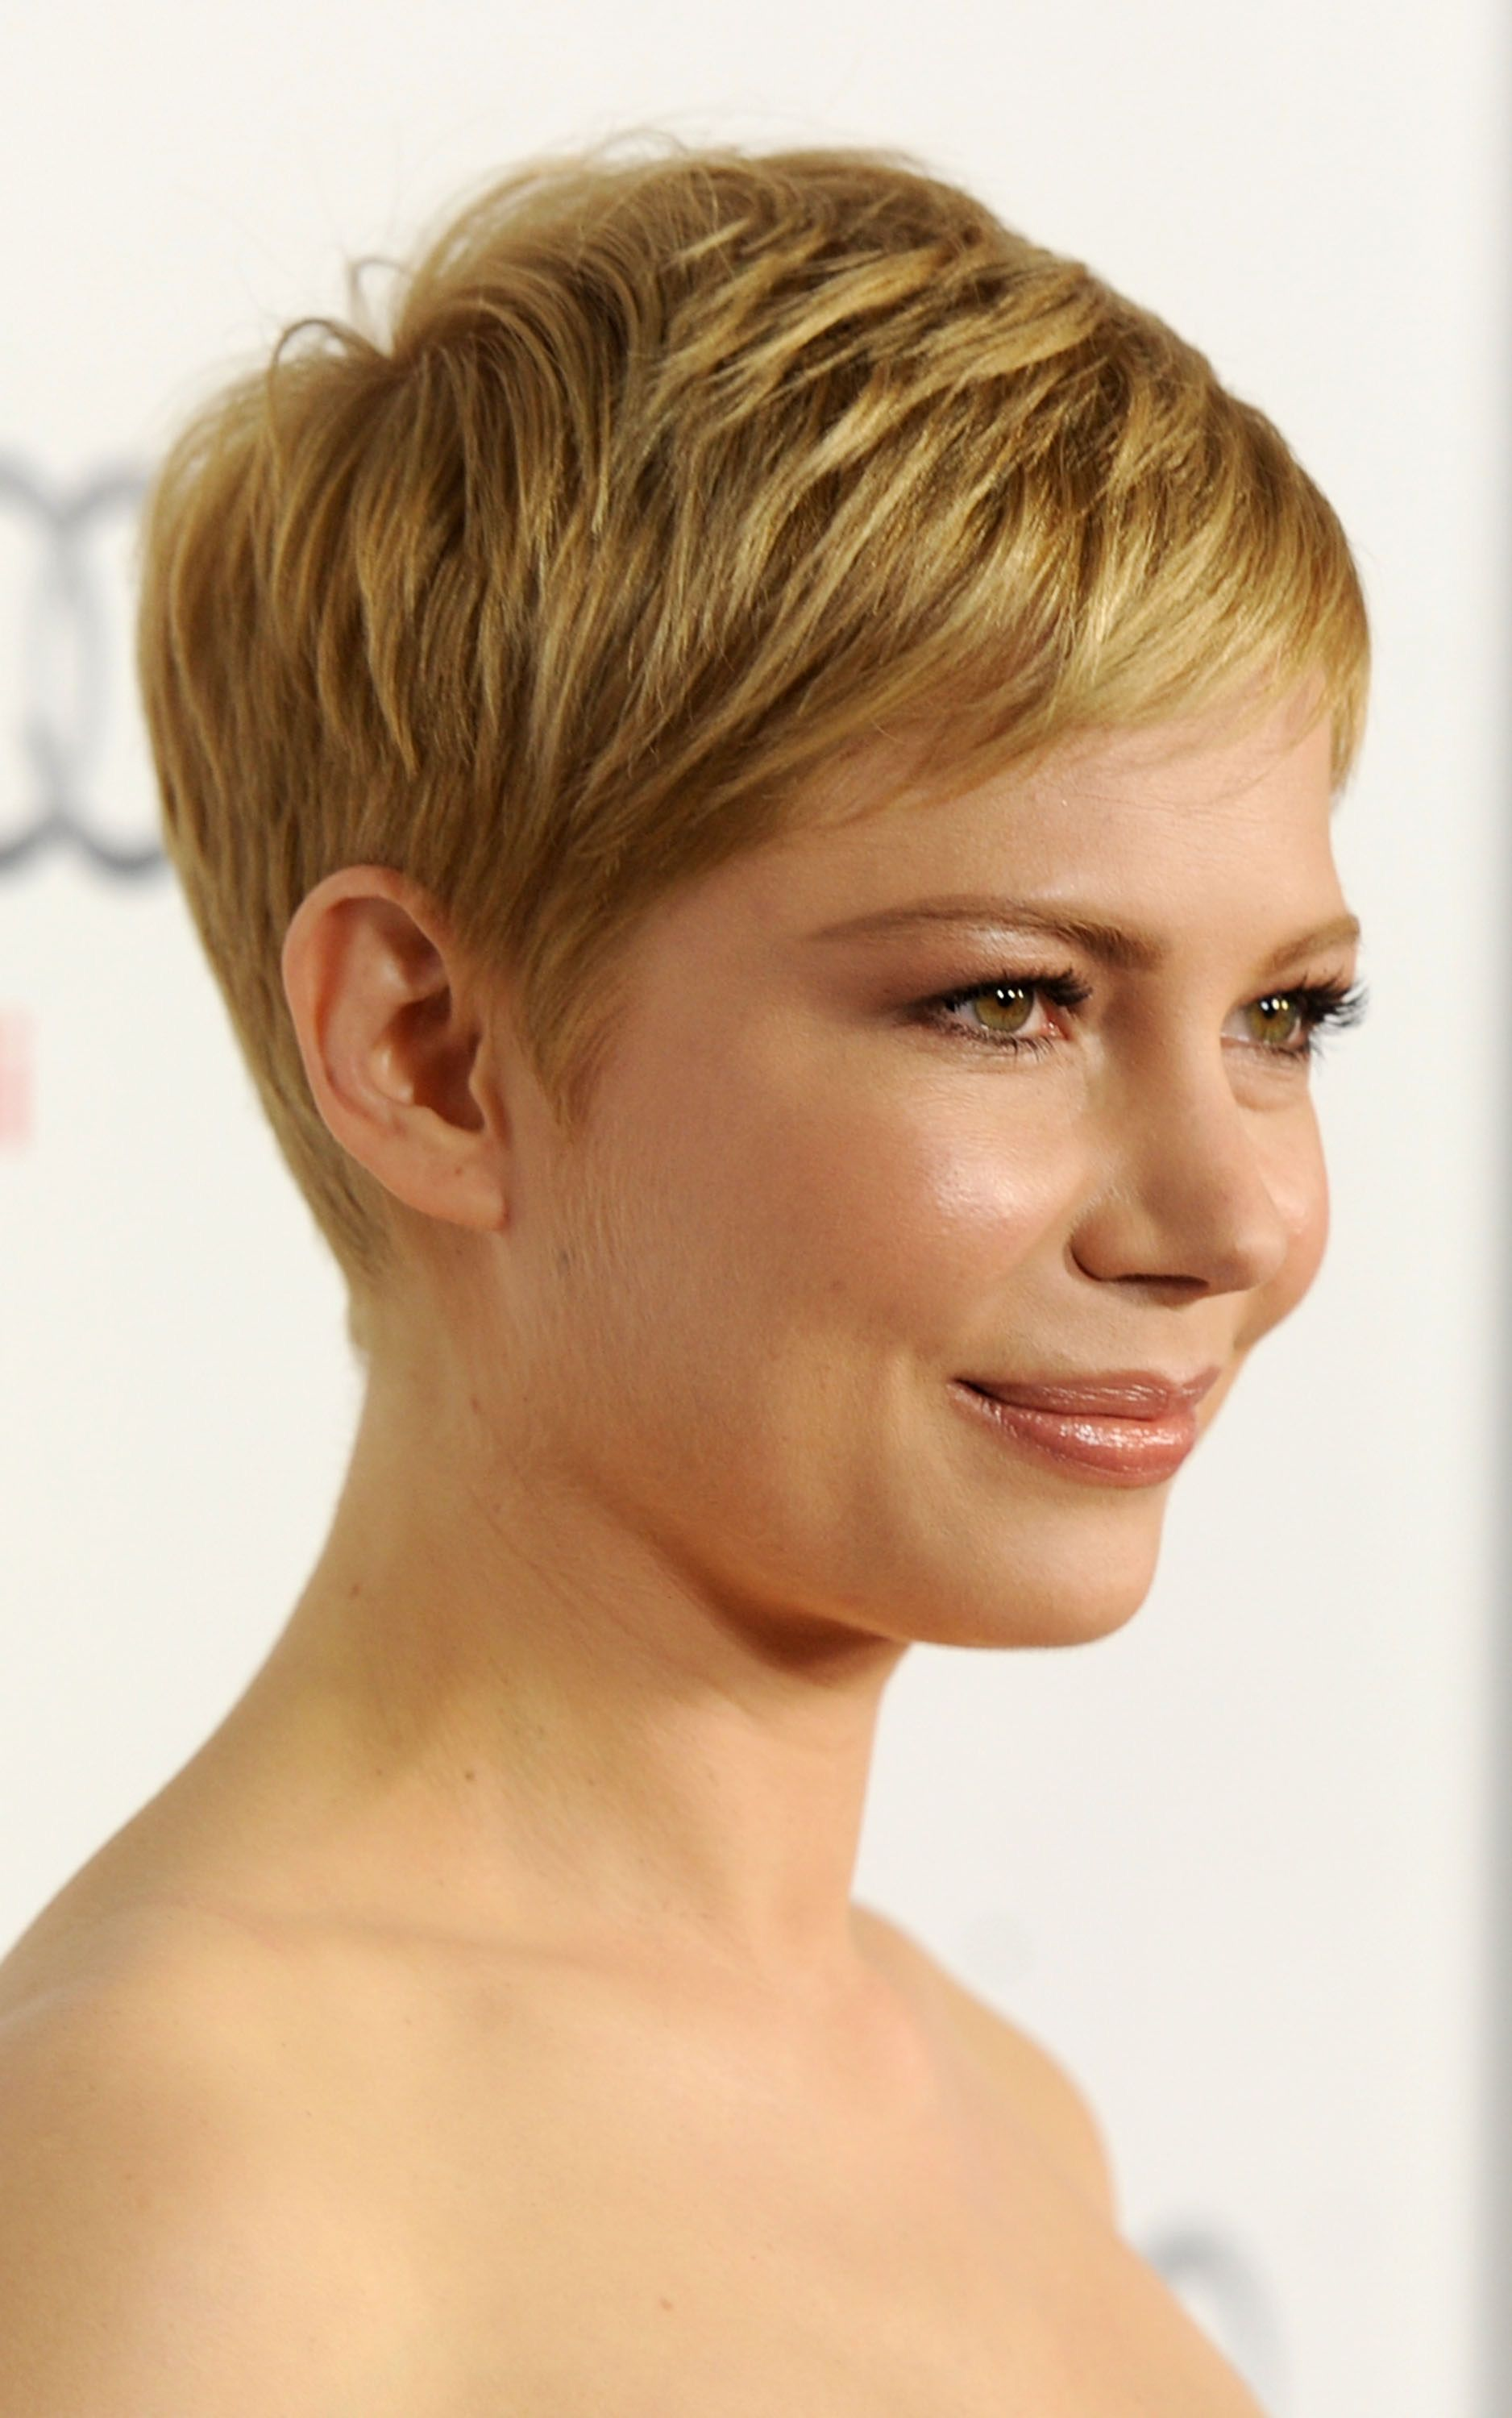 Pixie cut hairstyles back view make the cut would you dare take